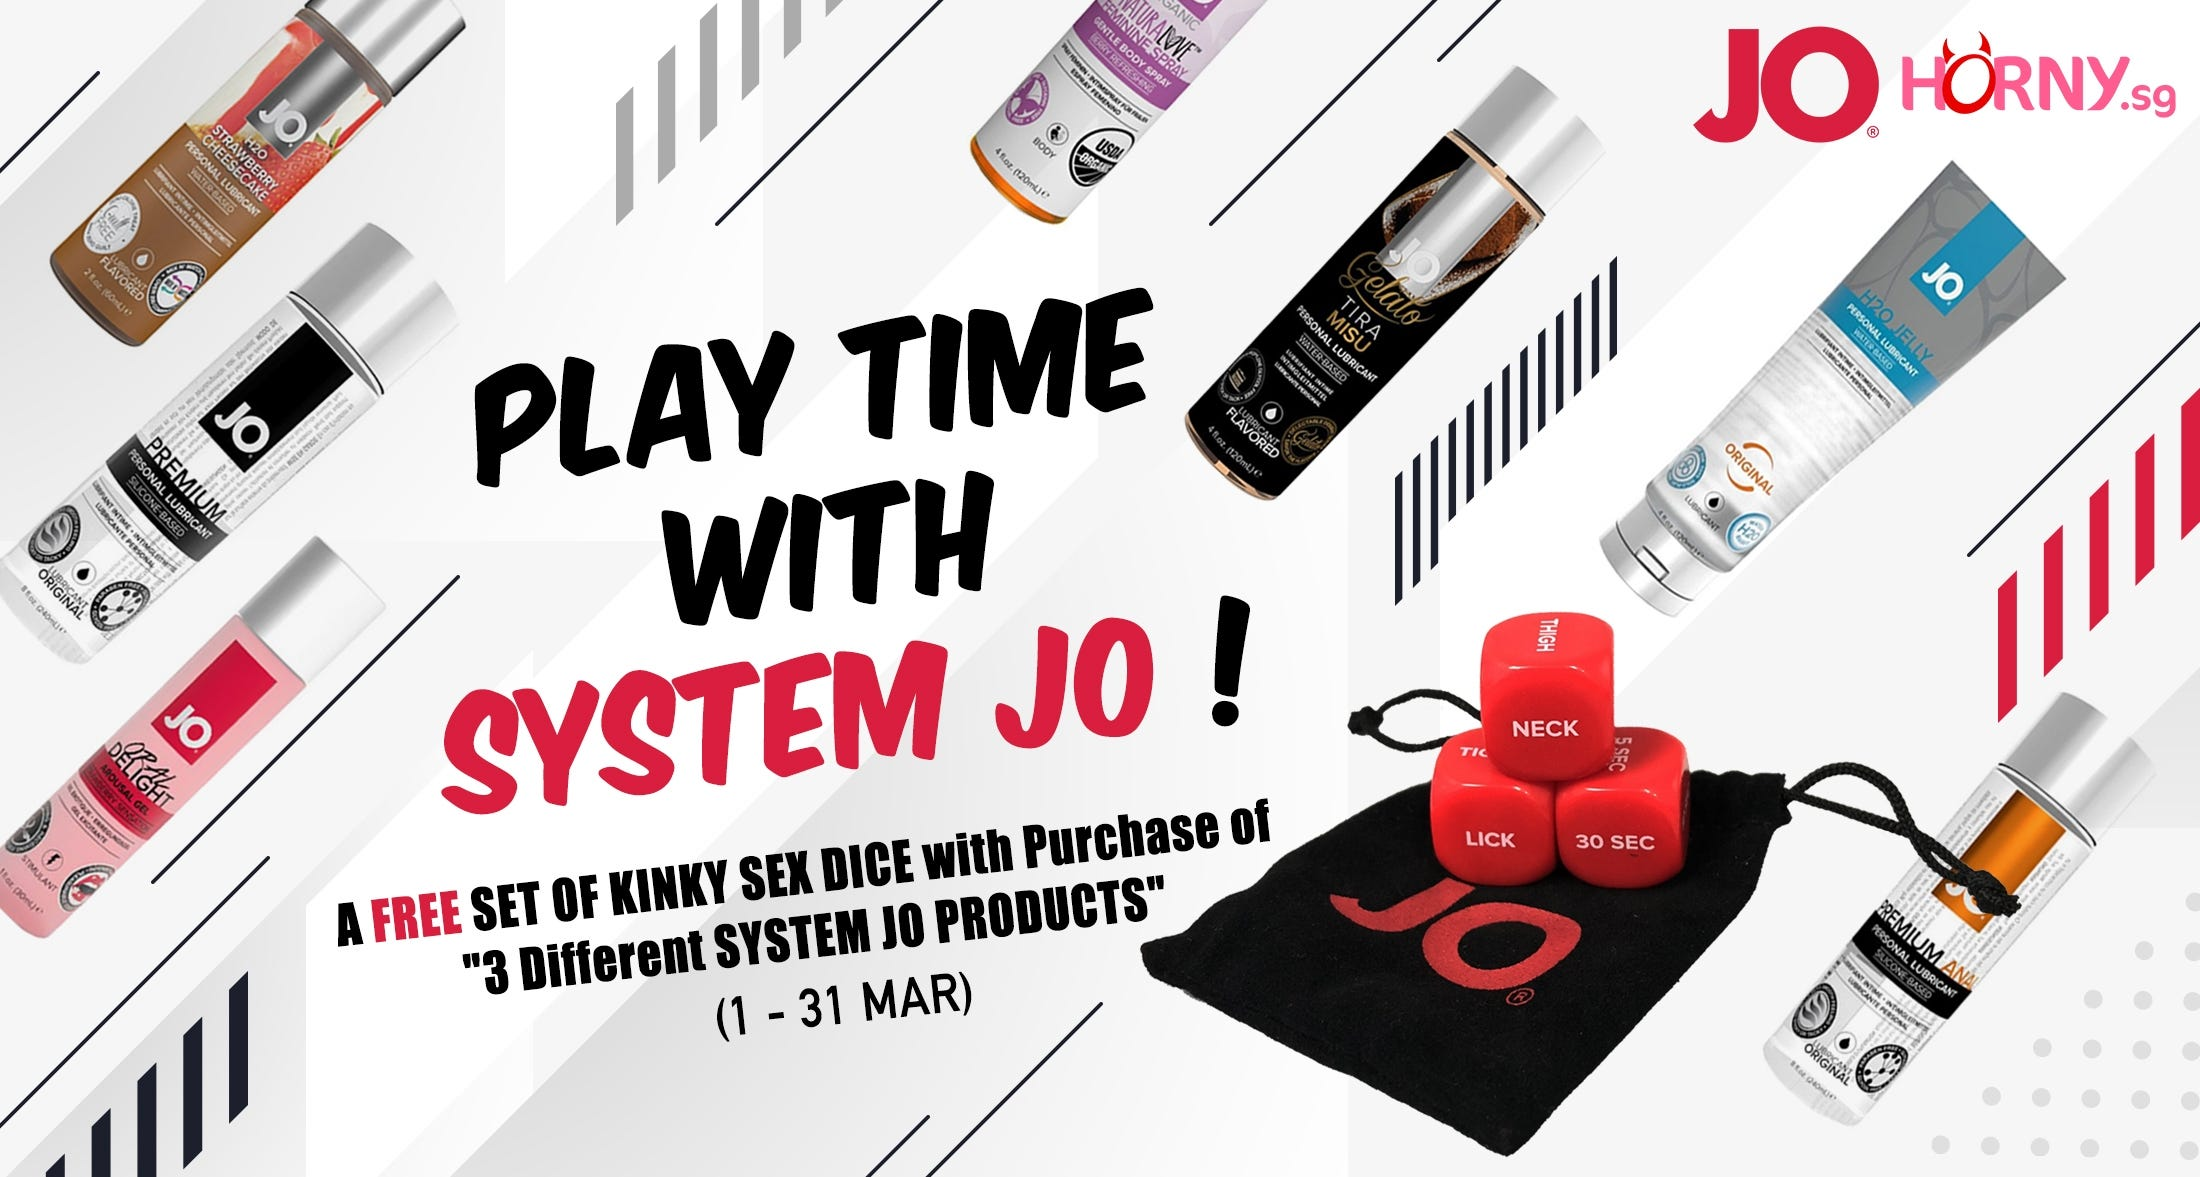 play time with system jo!